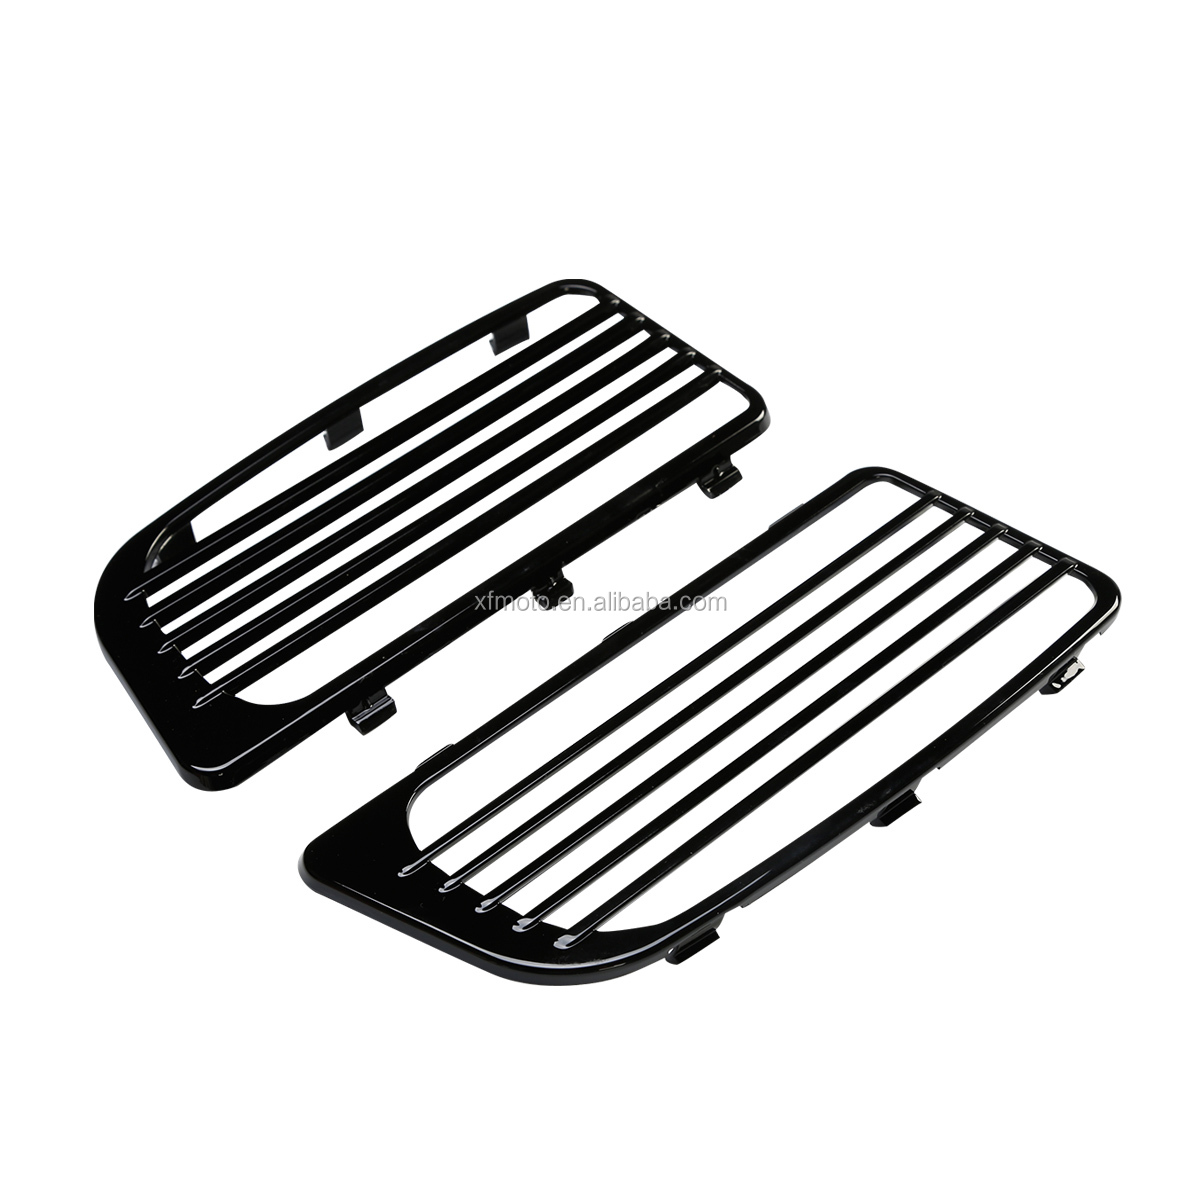 Tcmt Xf C145 B Motorcycle Abs Radiator Grills For